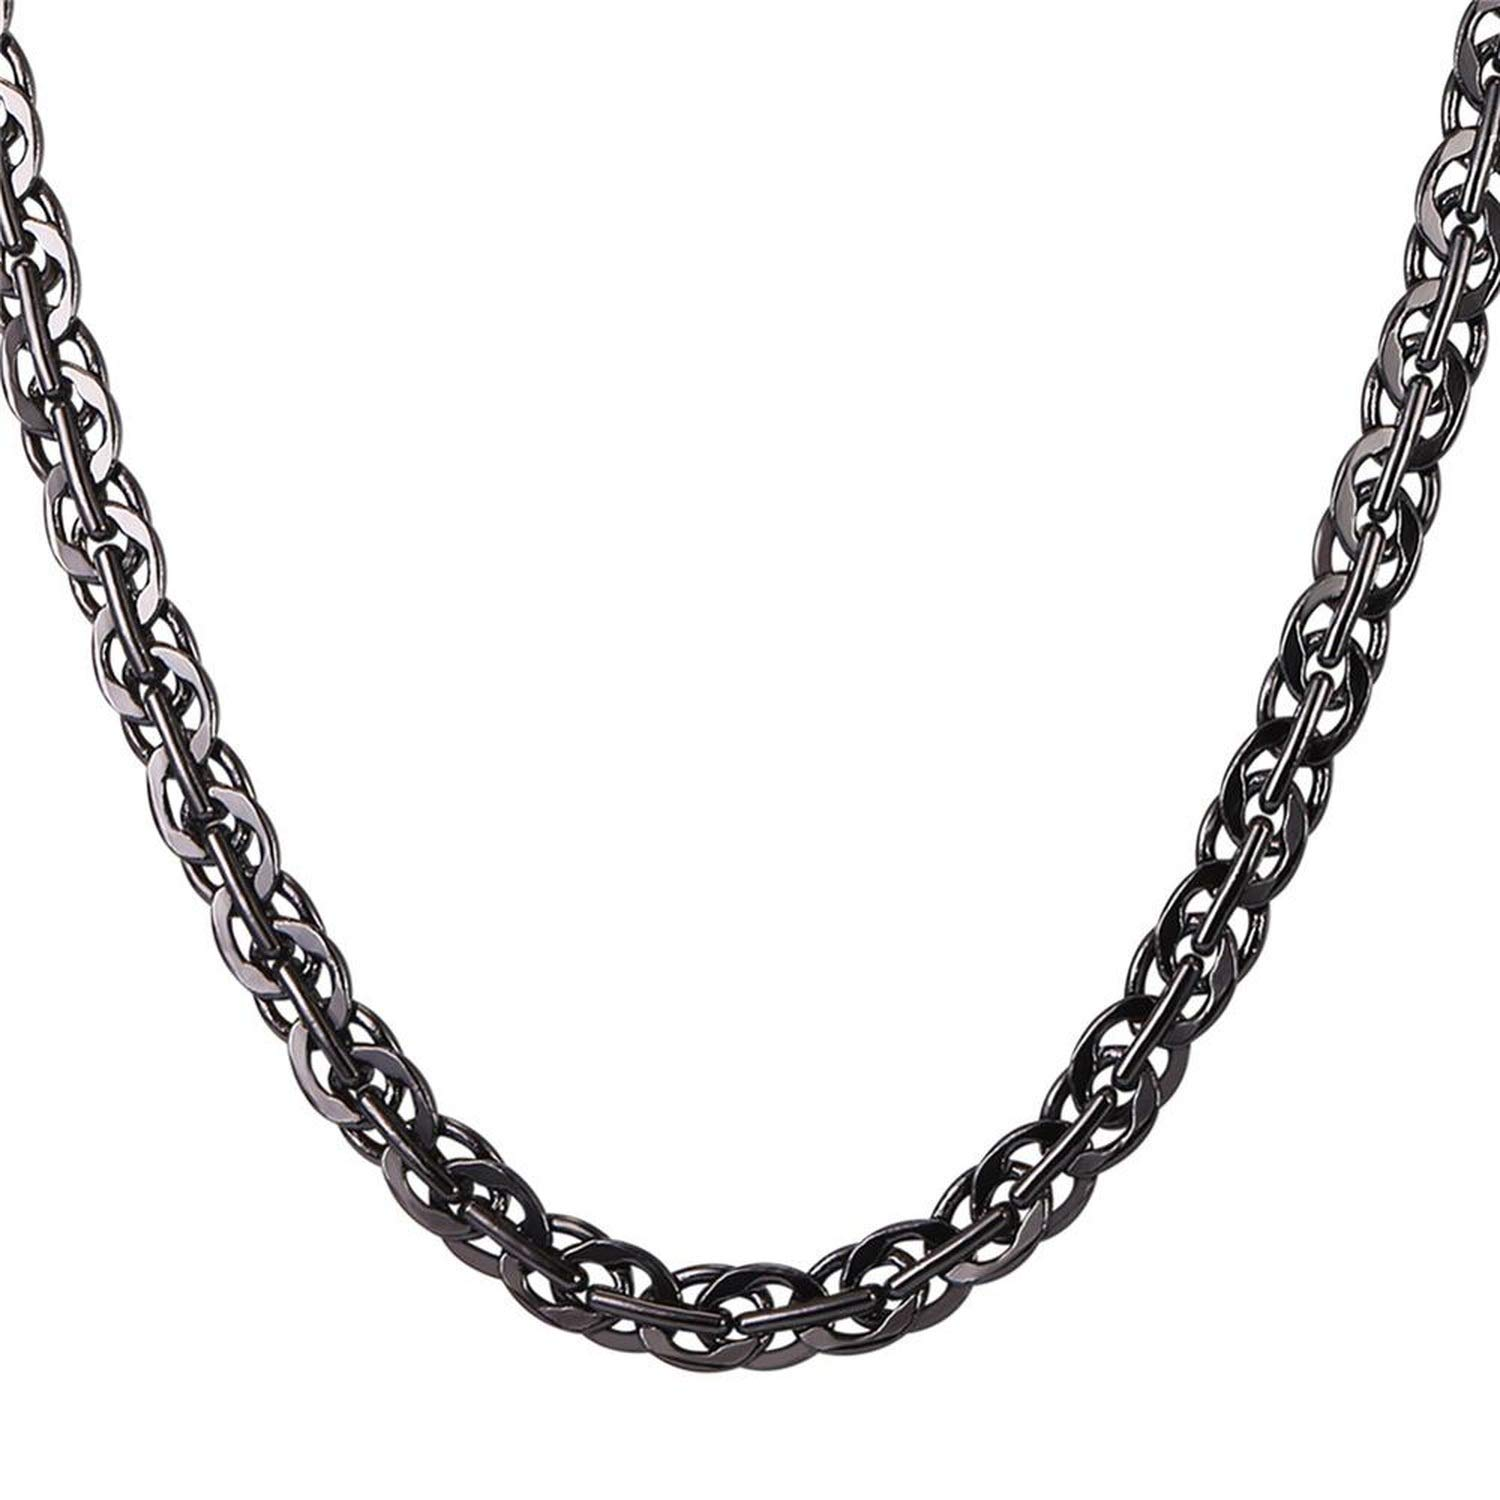 Zoe-clothes-store Gold//Silver//Black Color Chain Choker Necklace 6MM Rapper Hip Hop Chain for Women//Men Fashion Jewelry